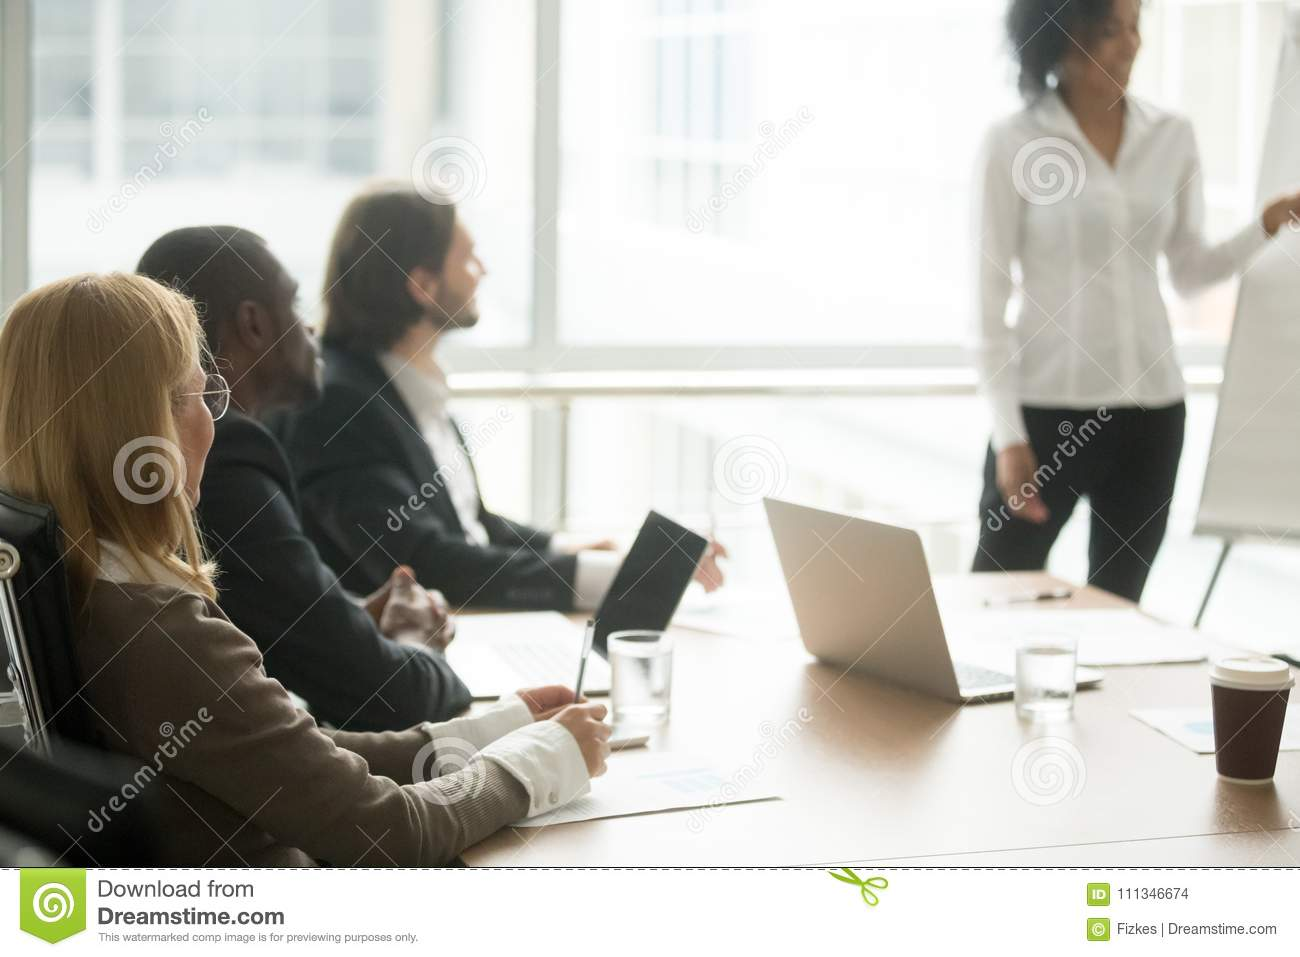 Multiracial businesspeople attending corporate group training or